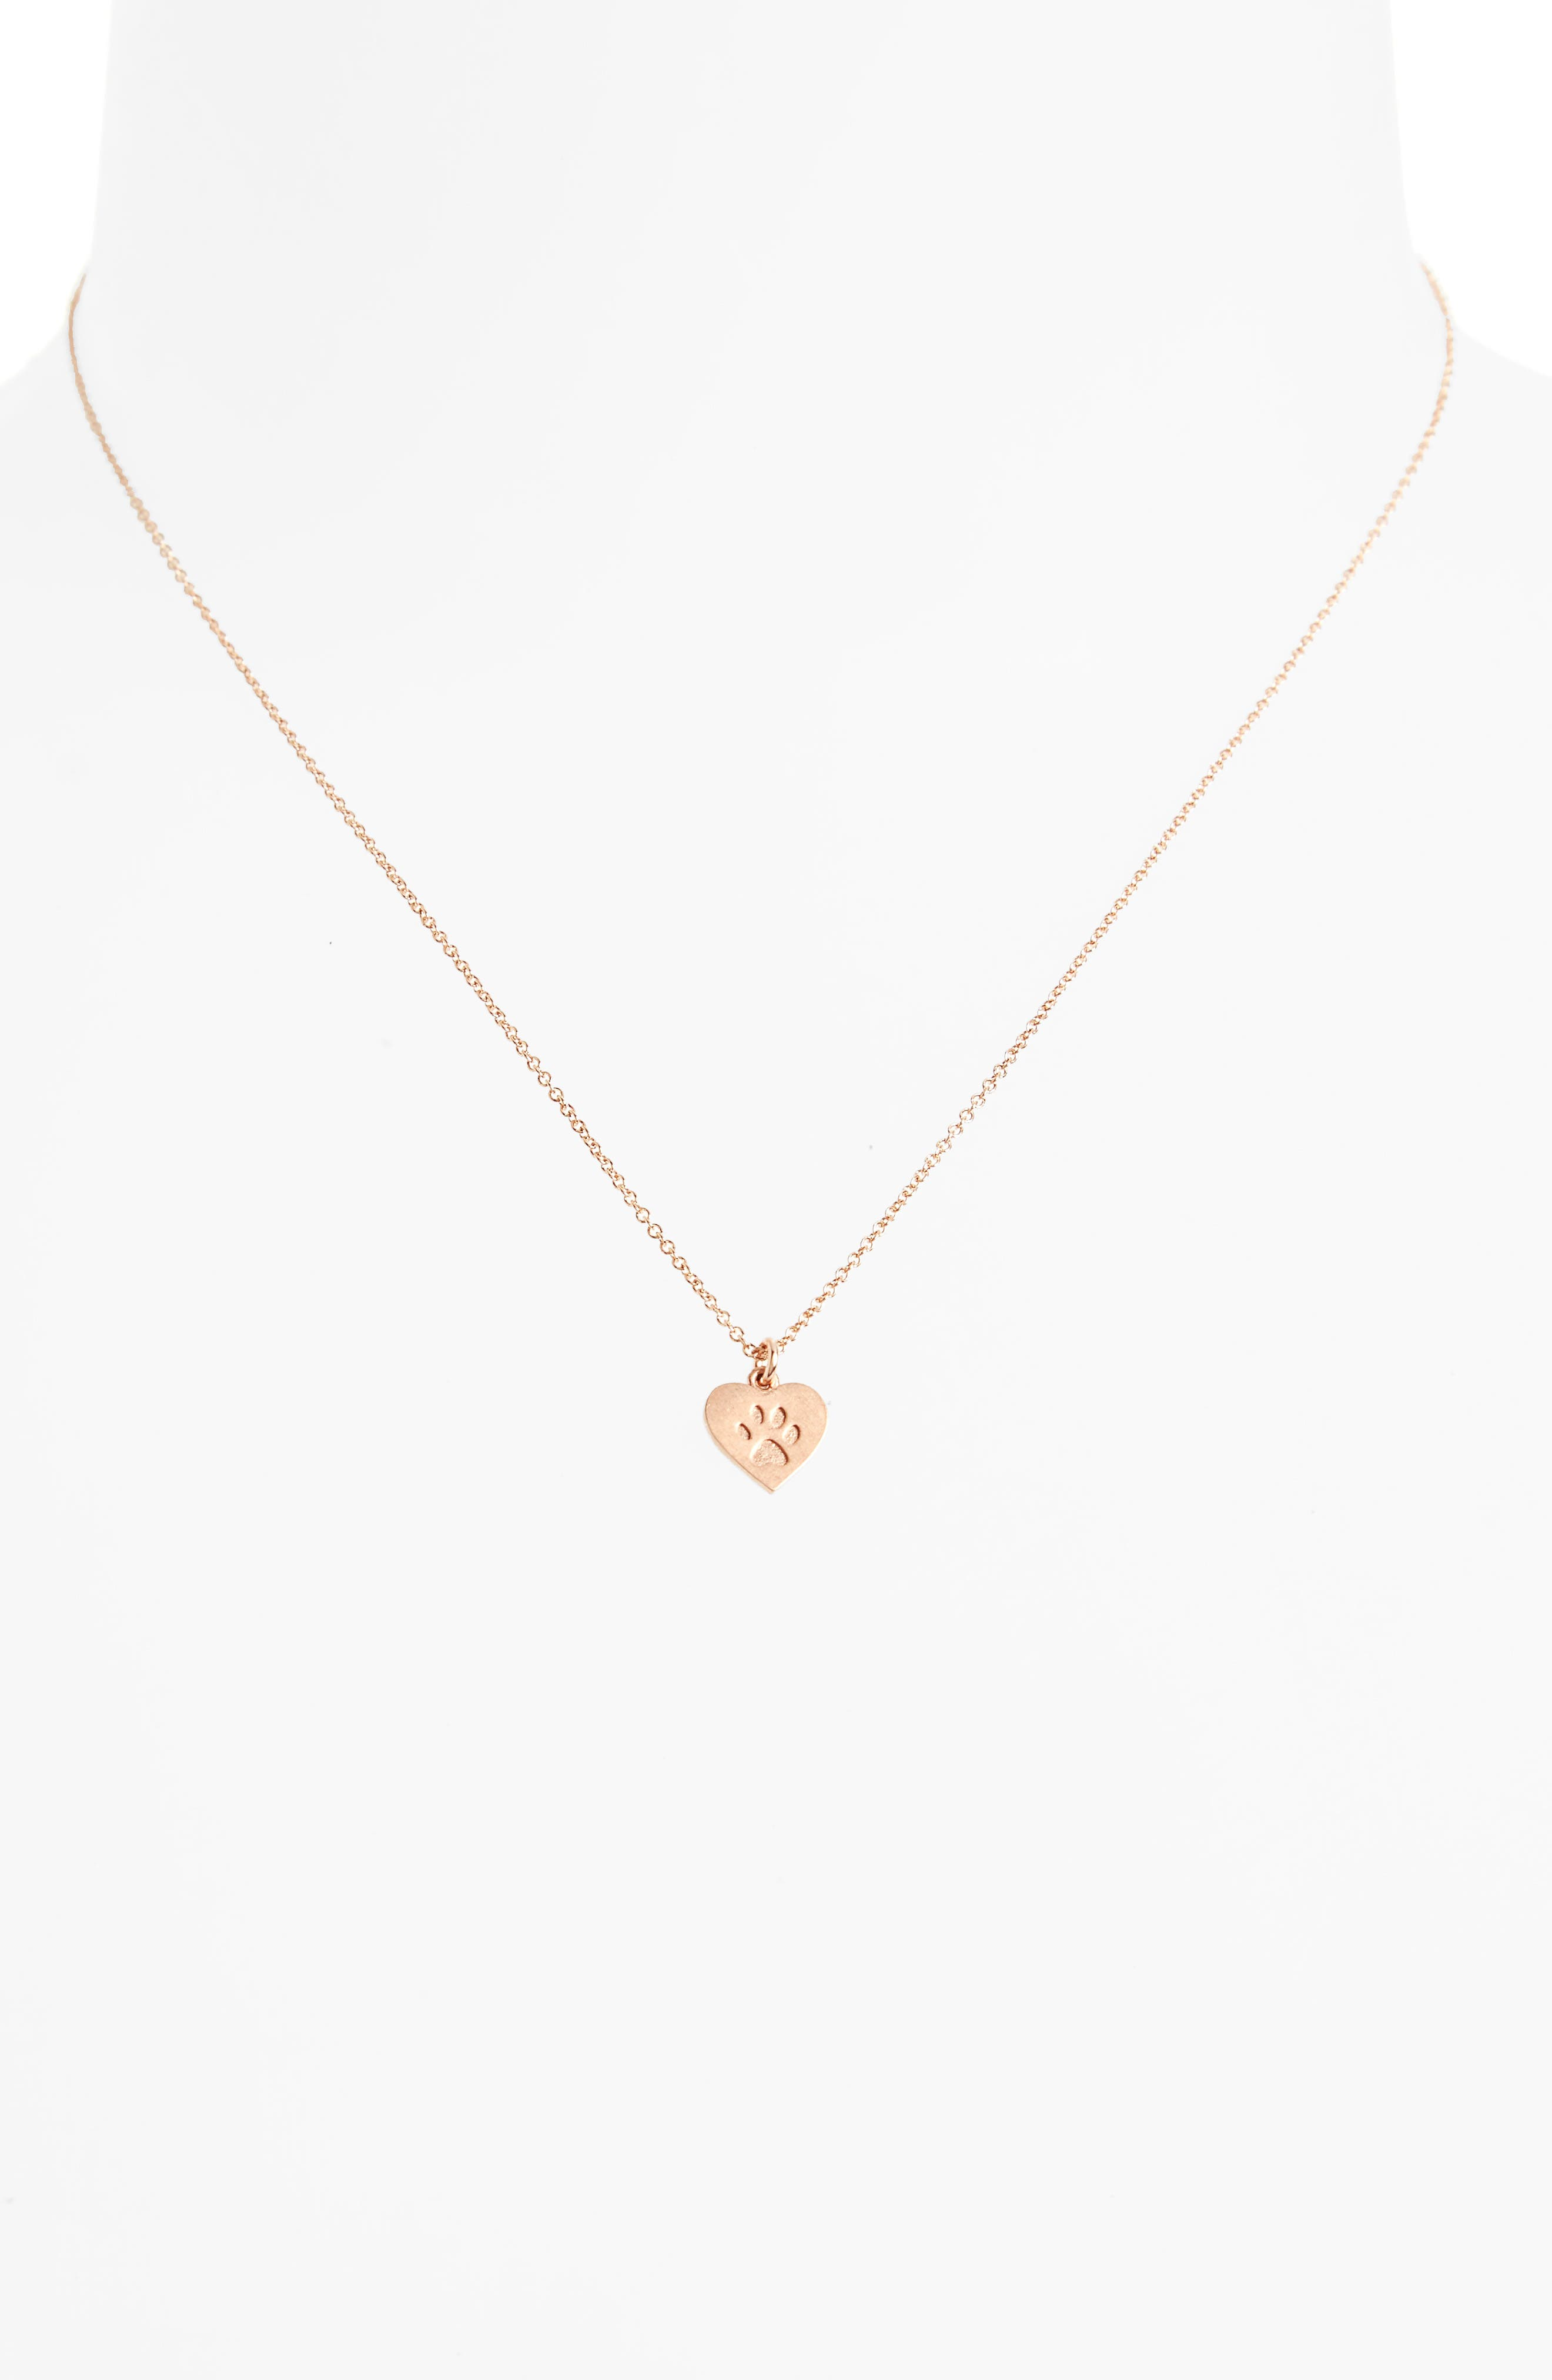 Animal Lover Best Friends Paw Charm Pendant Necklace,                             Alternate thumbnail 2, color,                             Rose Gold